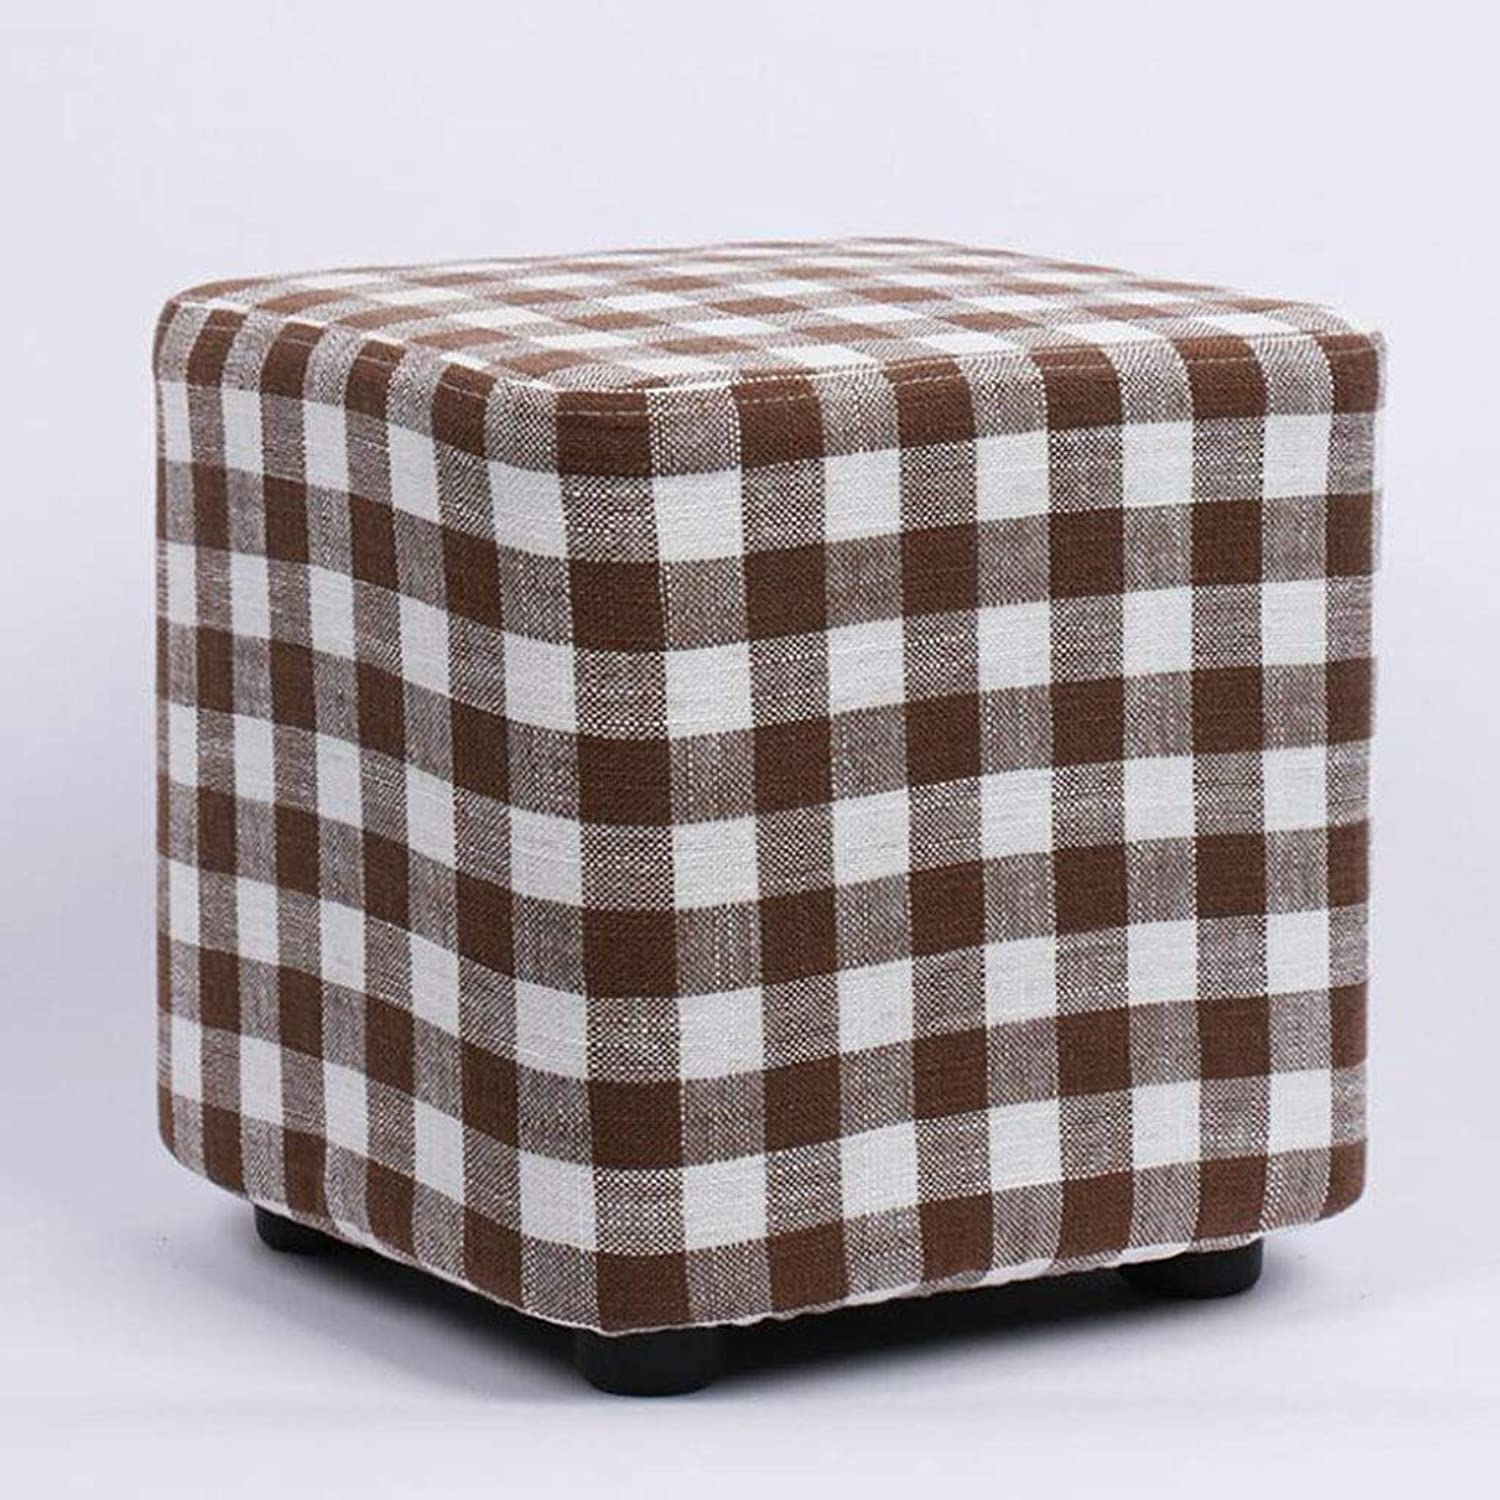 Fabric Sofa Stool 28  28  28cm Solid Wood Square Stool Fashion shoes Stool Creative shoes Bench Fabric Stool Stool Sofa Stool Coffee Table Bench V (color   A9)